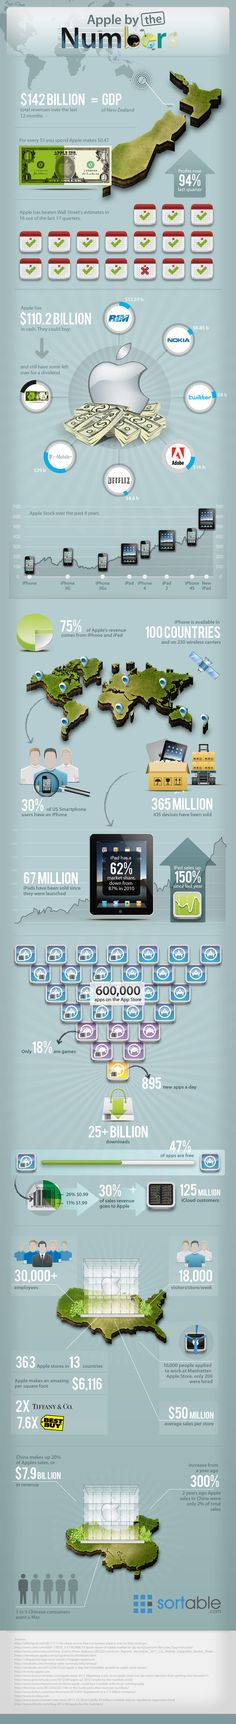 Apple by the Numbers #infographic